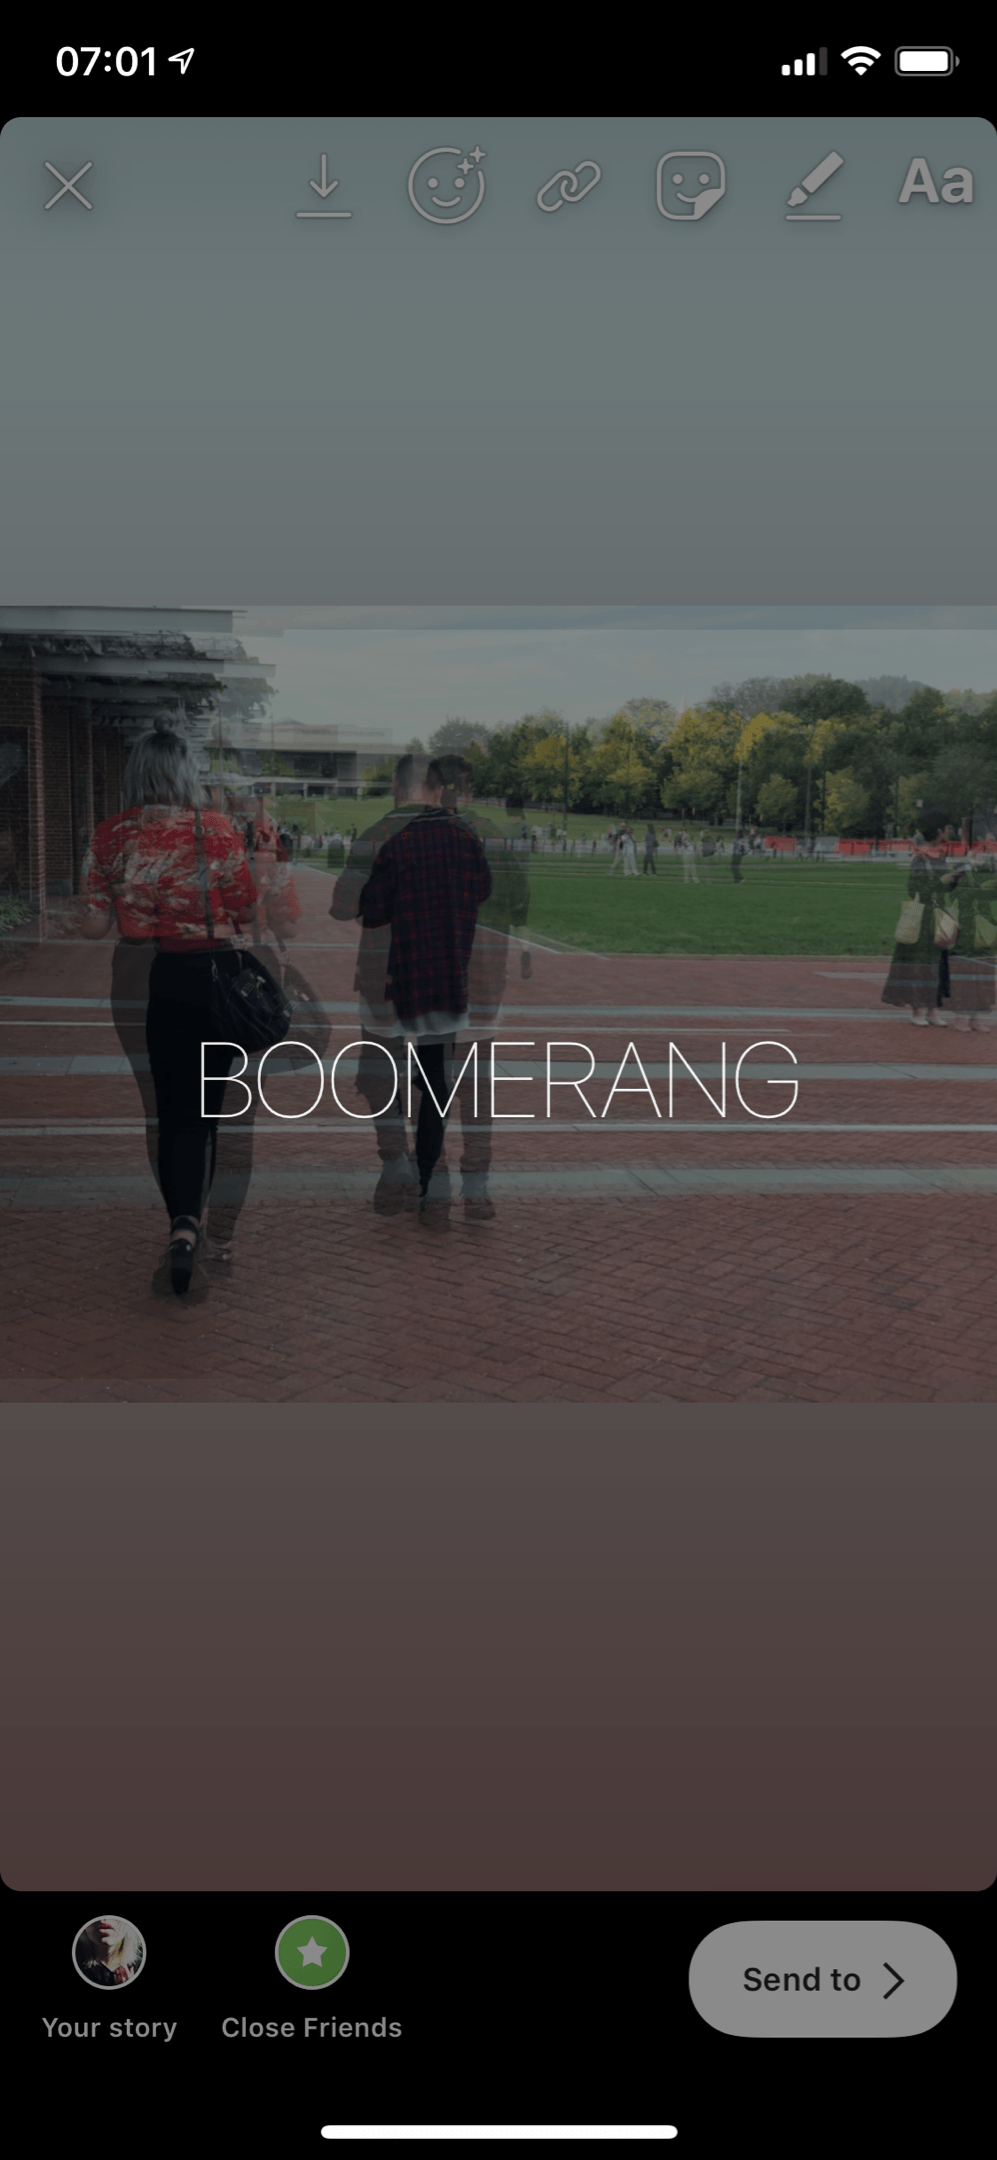 Press and hold the image for approximately 2 seconds until 'BOOMERANG' appears on the screen.